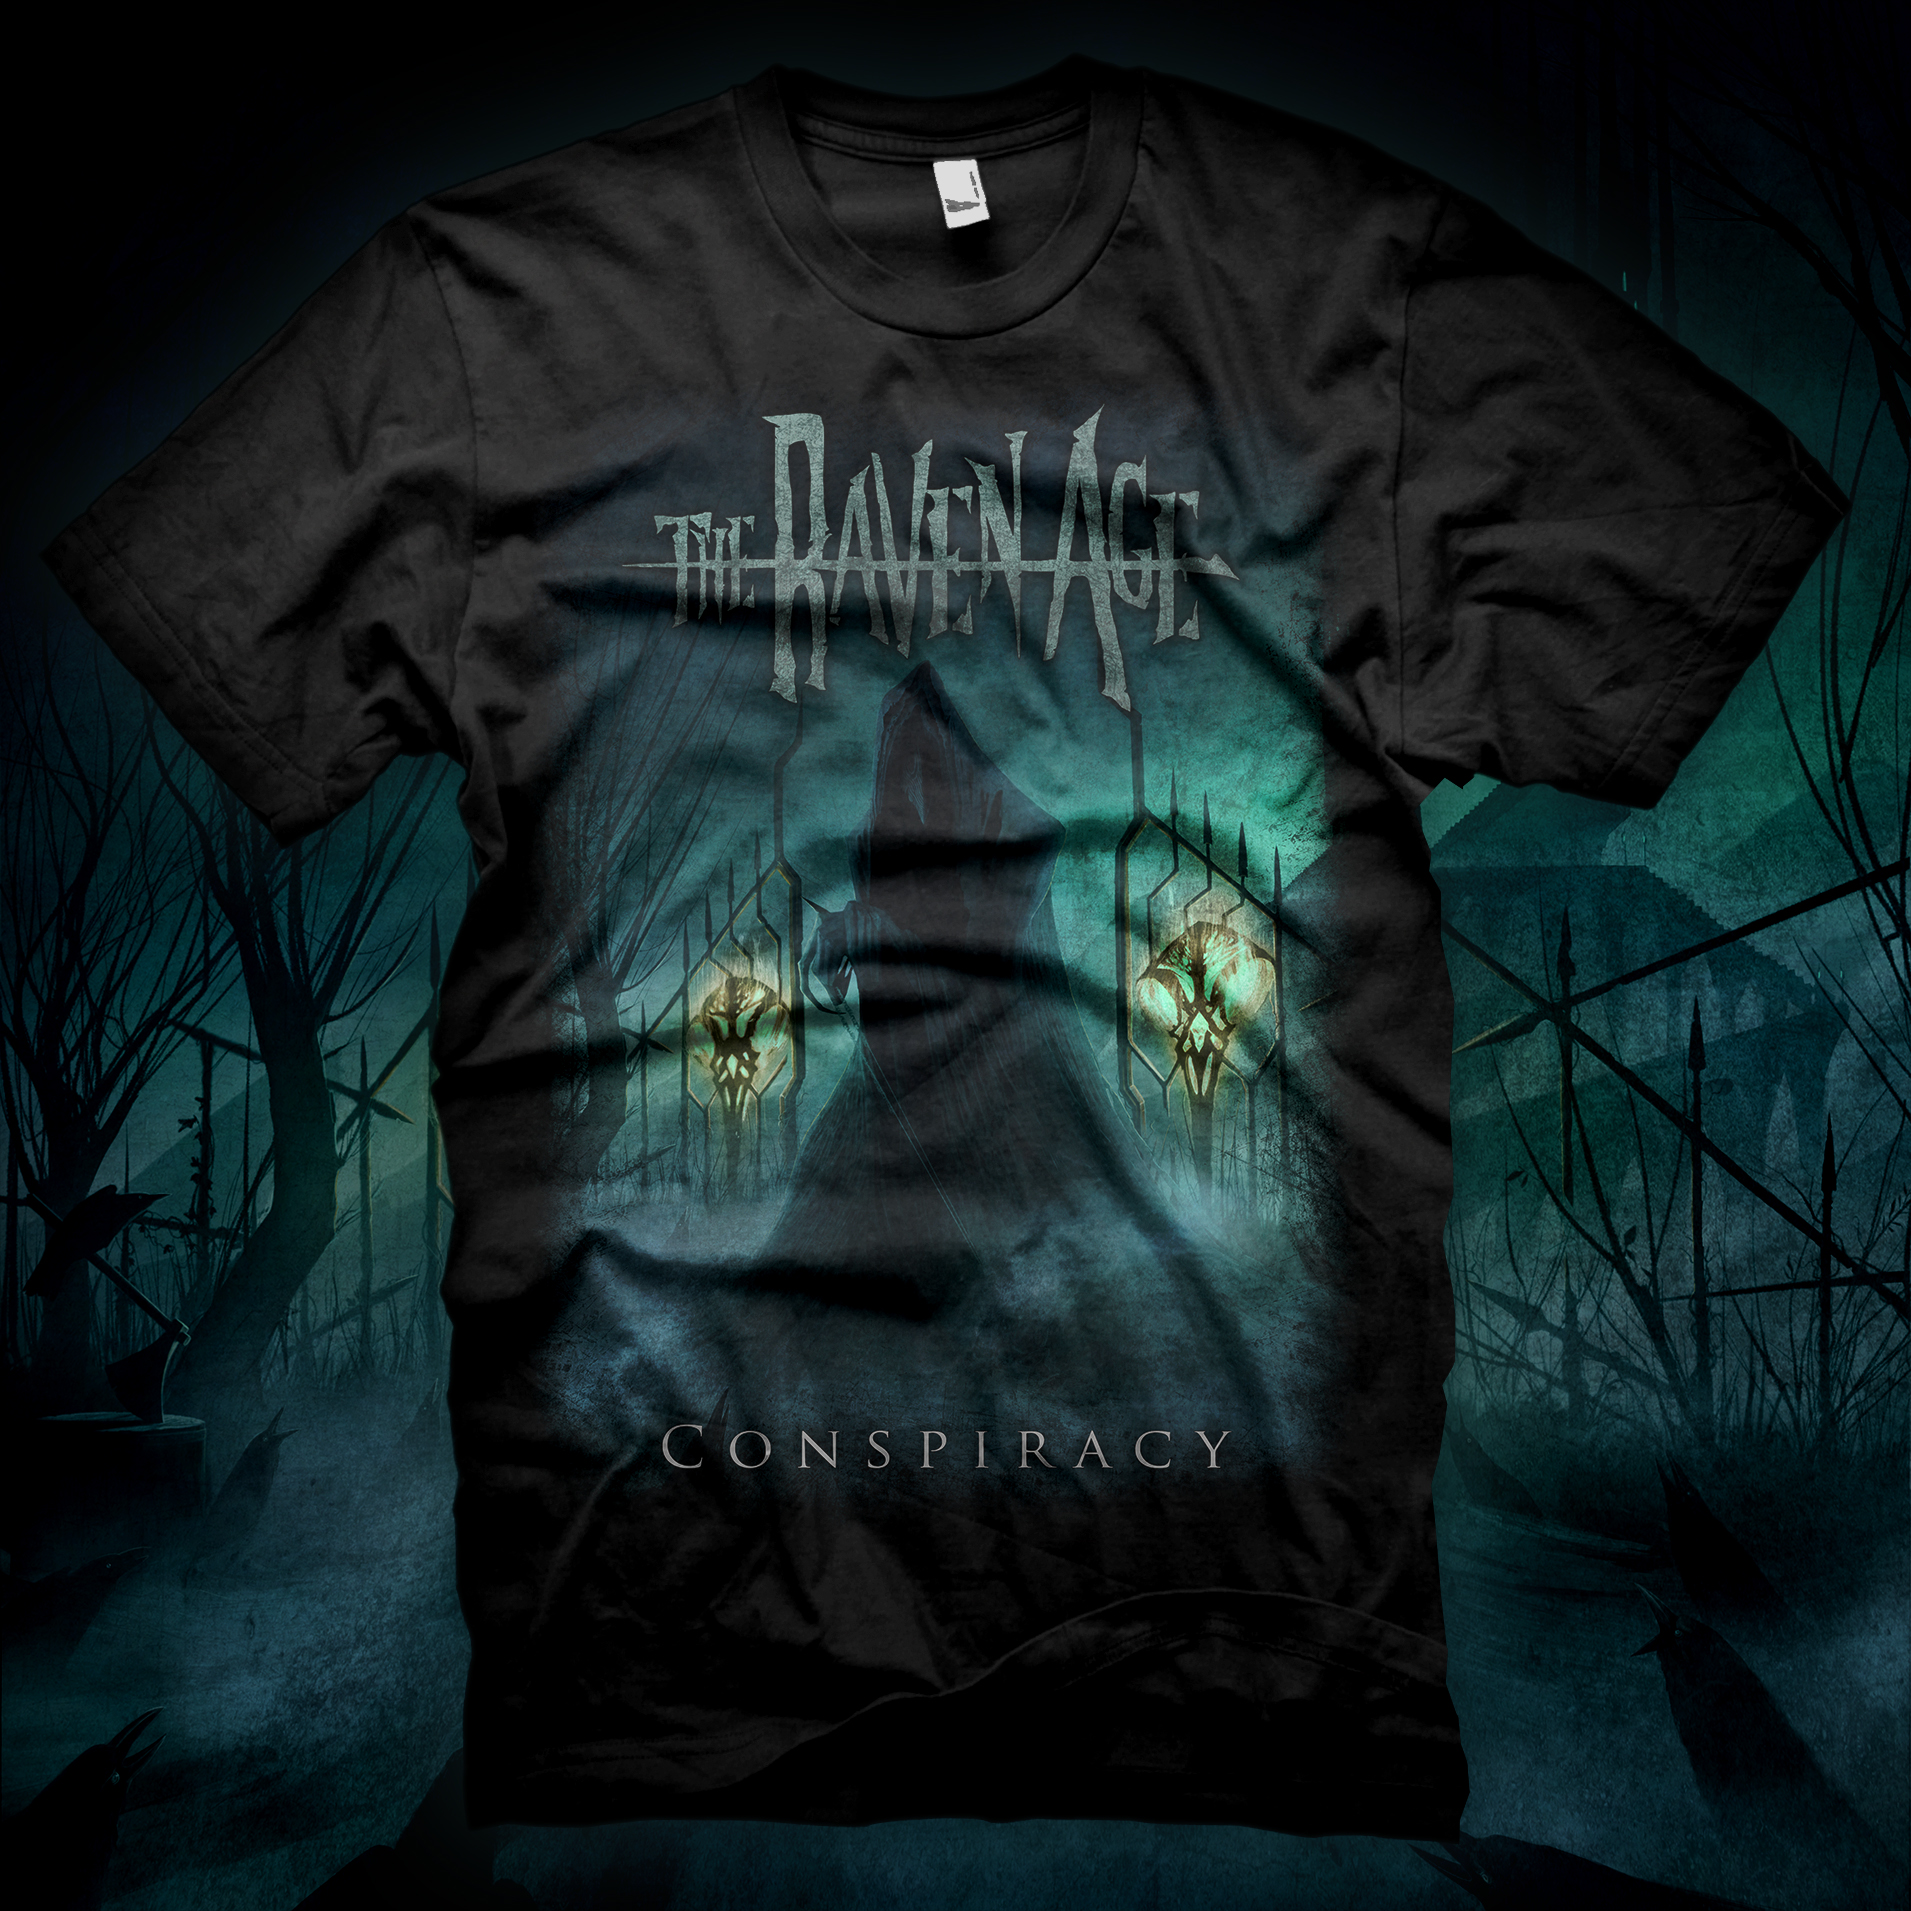 Conspiracy - T-Shirt - The Raven Age